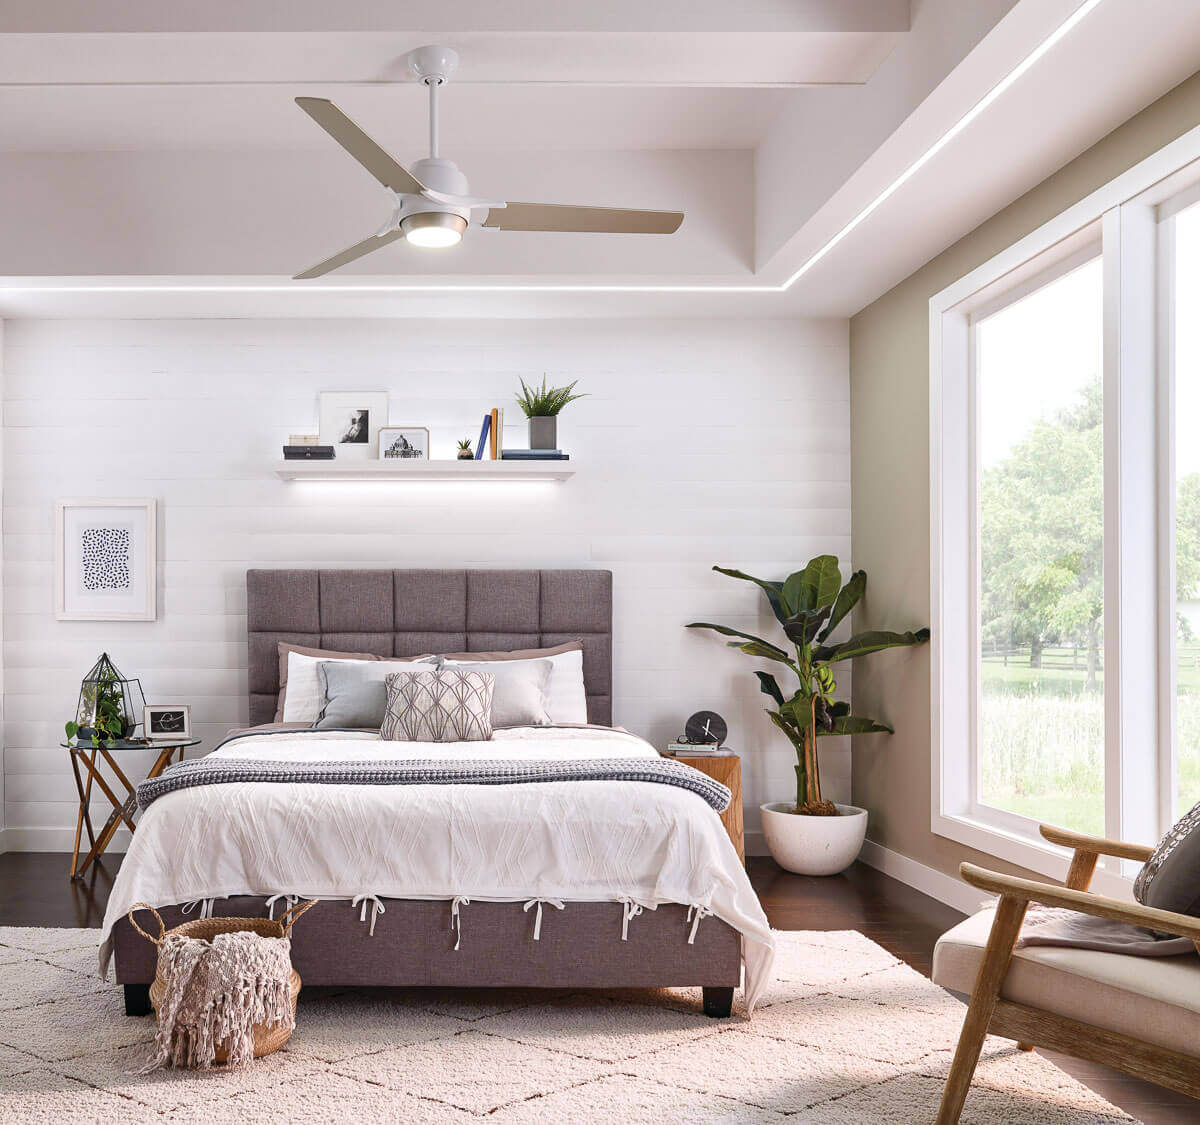 Ceiling Fan Styles to Inspire